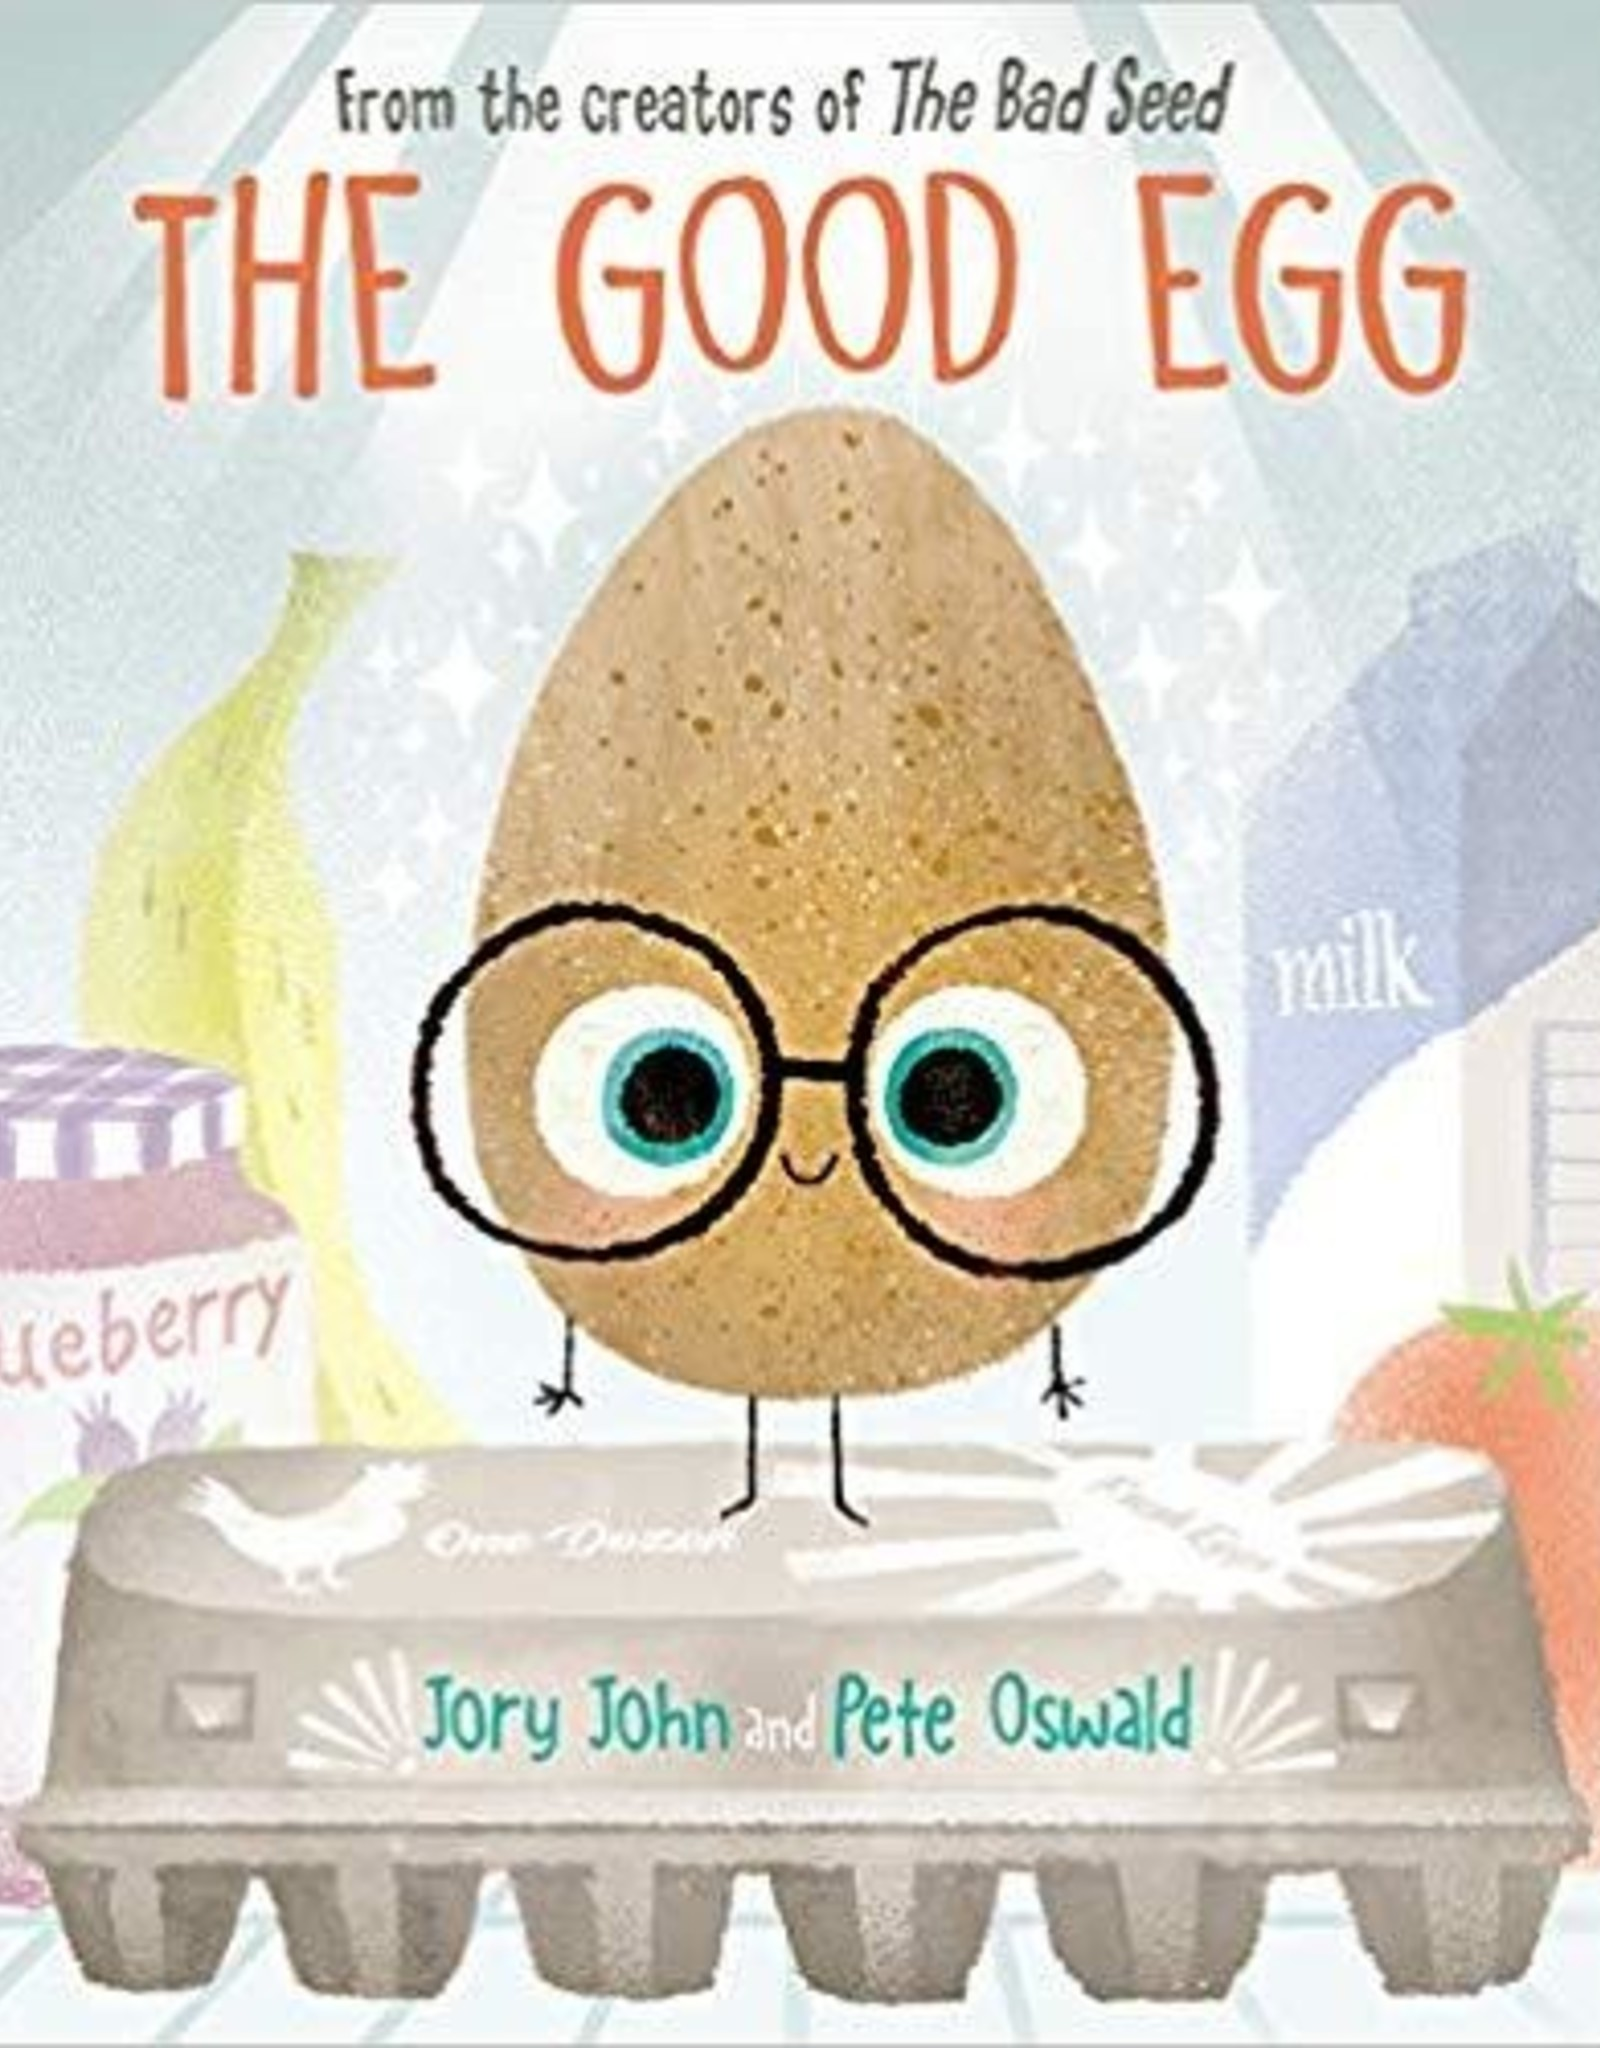 MerryMakers Poupée The Good Egg / The Bad Seed